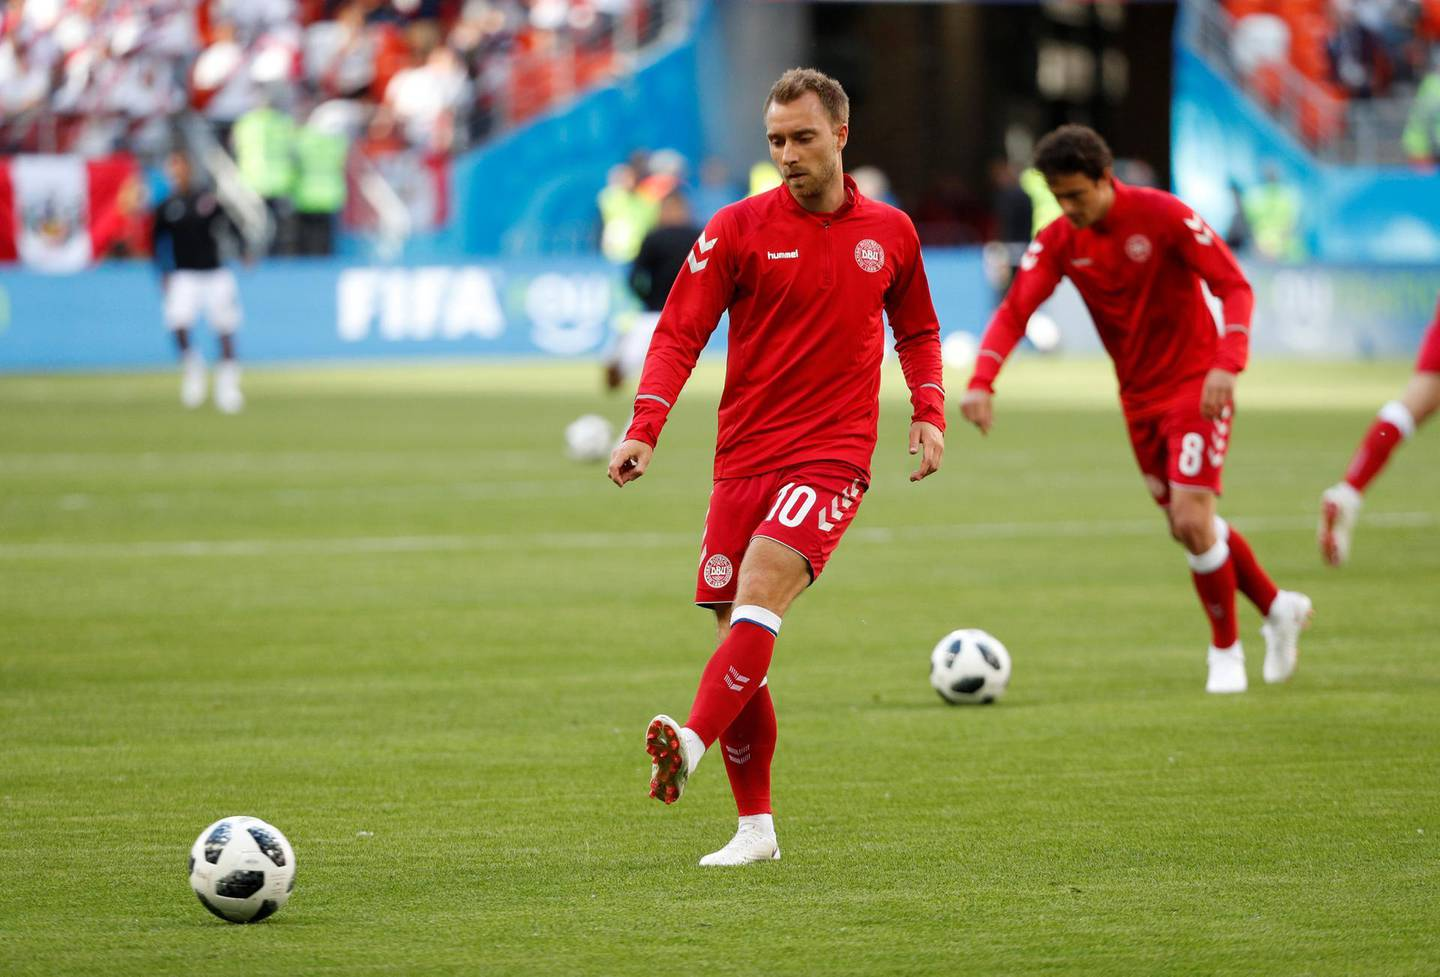 Soccer Football - World Cup - Group C - Peru vs Denmark - Mordovia Arena, Saransk, Russia - June 16, 2018   Denmark's Christian Eriksen during the warm up before the match    REUTERS/Max Rossi